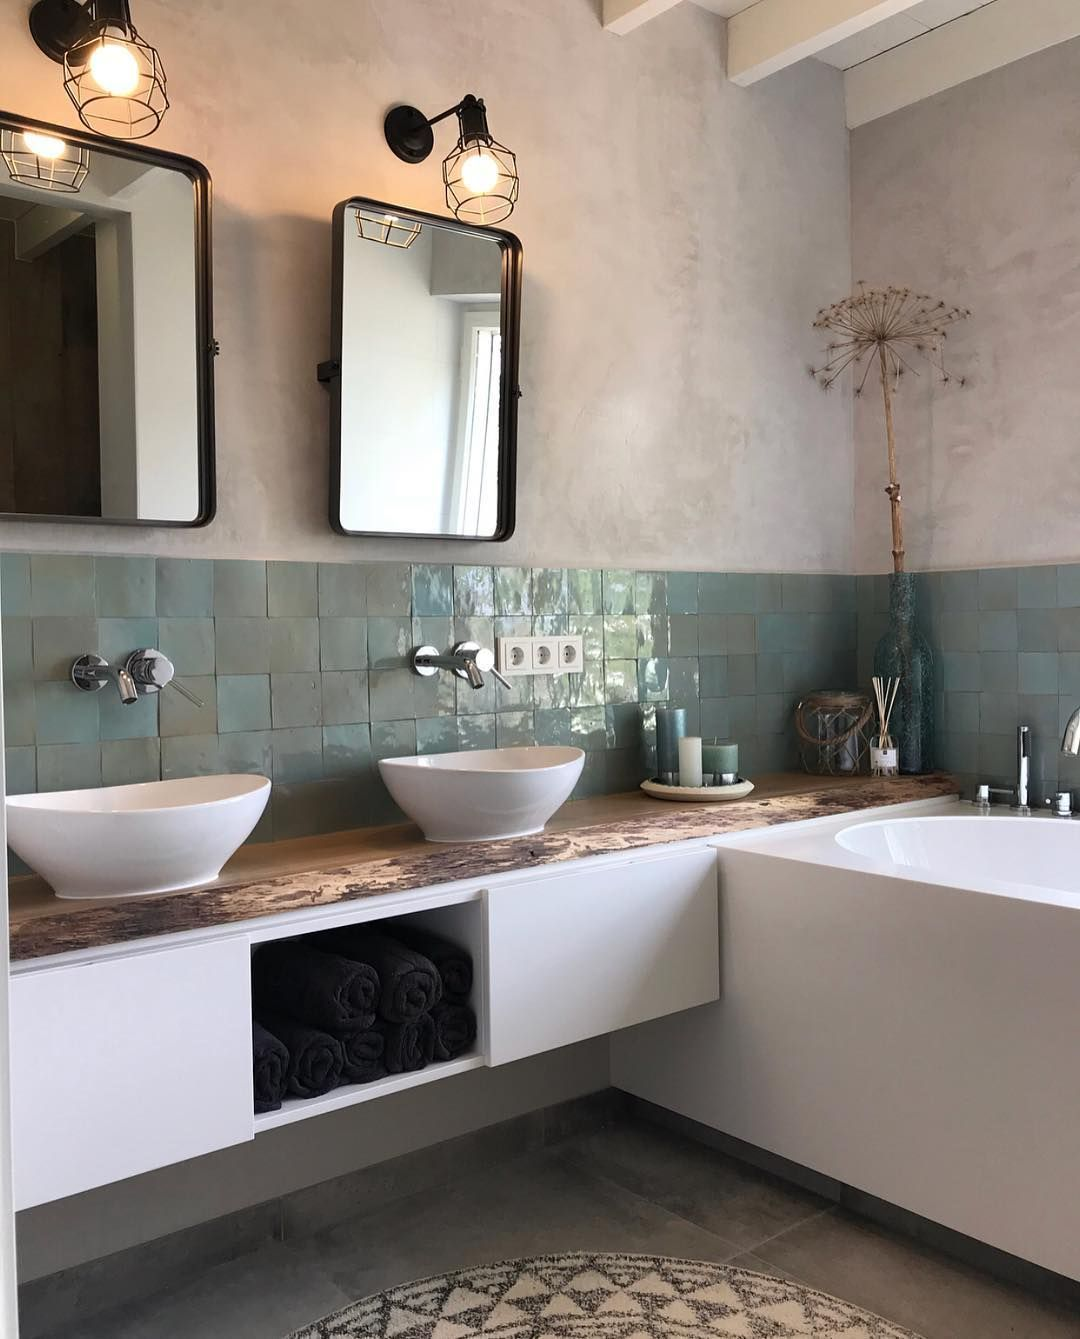 Low Budget Bathroom Makeovers: 65 Most Popular Small Bathroom Remodel Ideas On A Budget